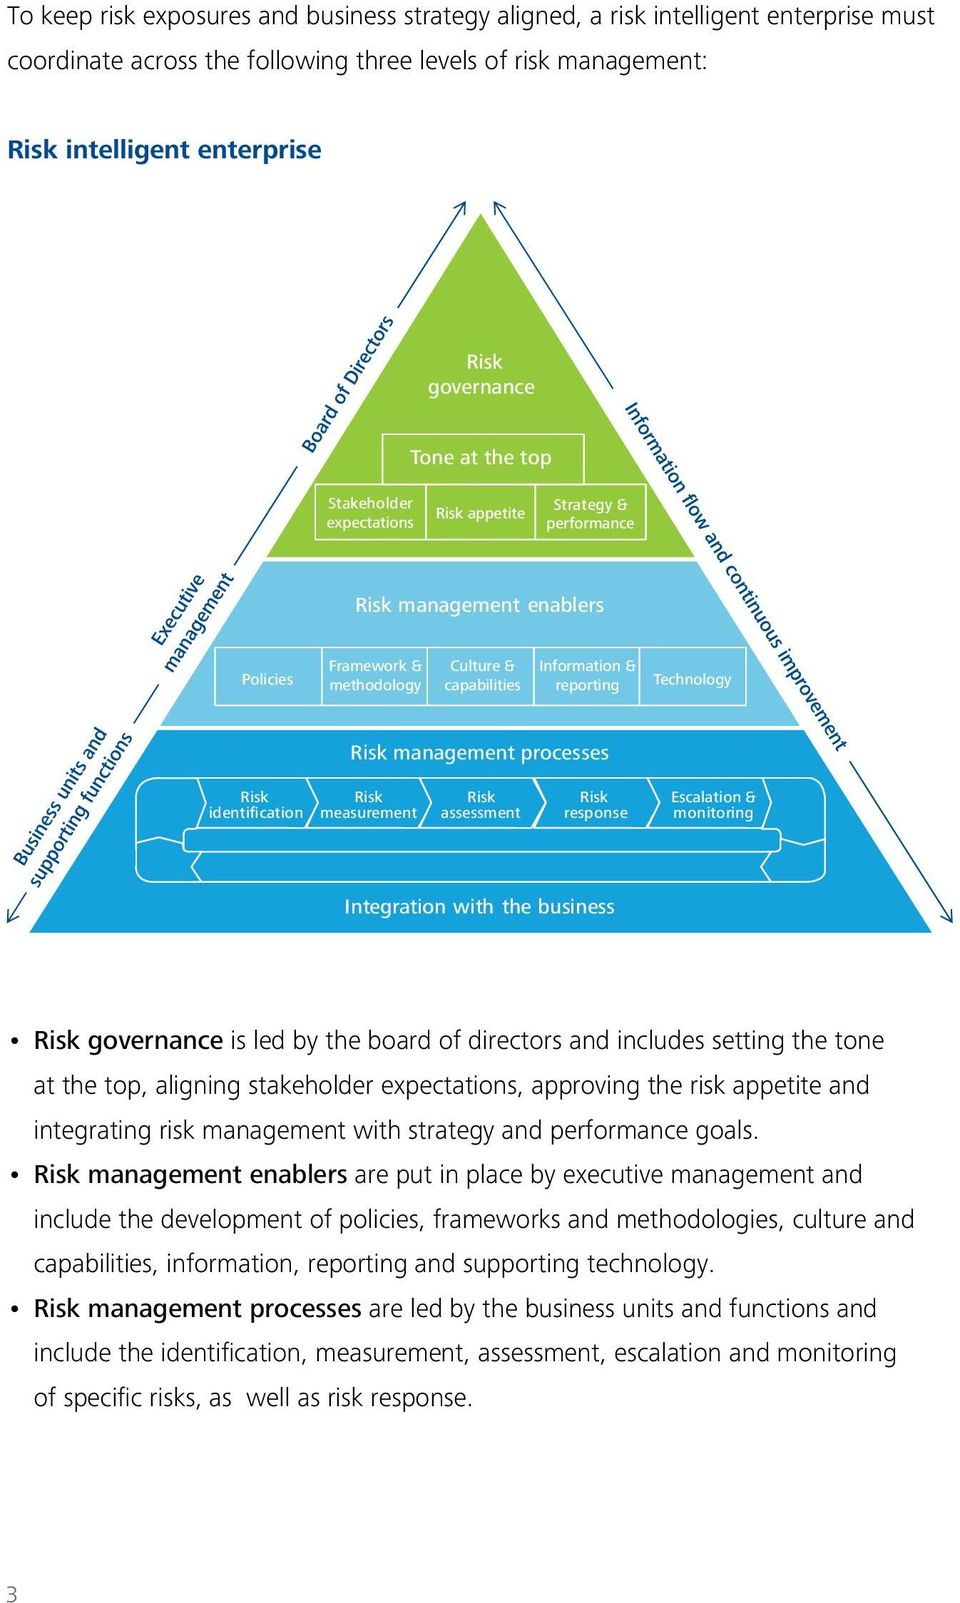 management processes Risk identification Risk measurement Risk assessment Risk response Escalation & monitoring Integration with the business Risk governance is led by the board of directors and